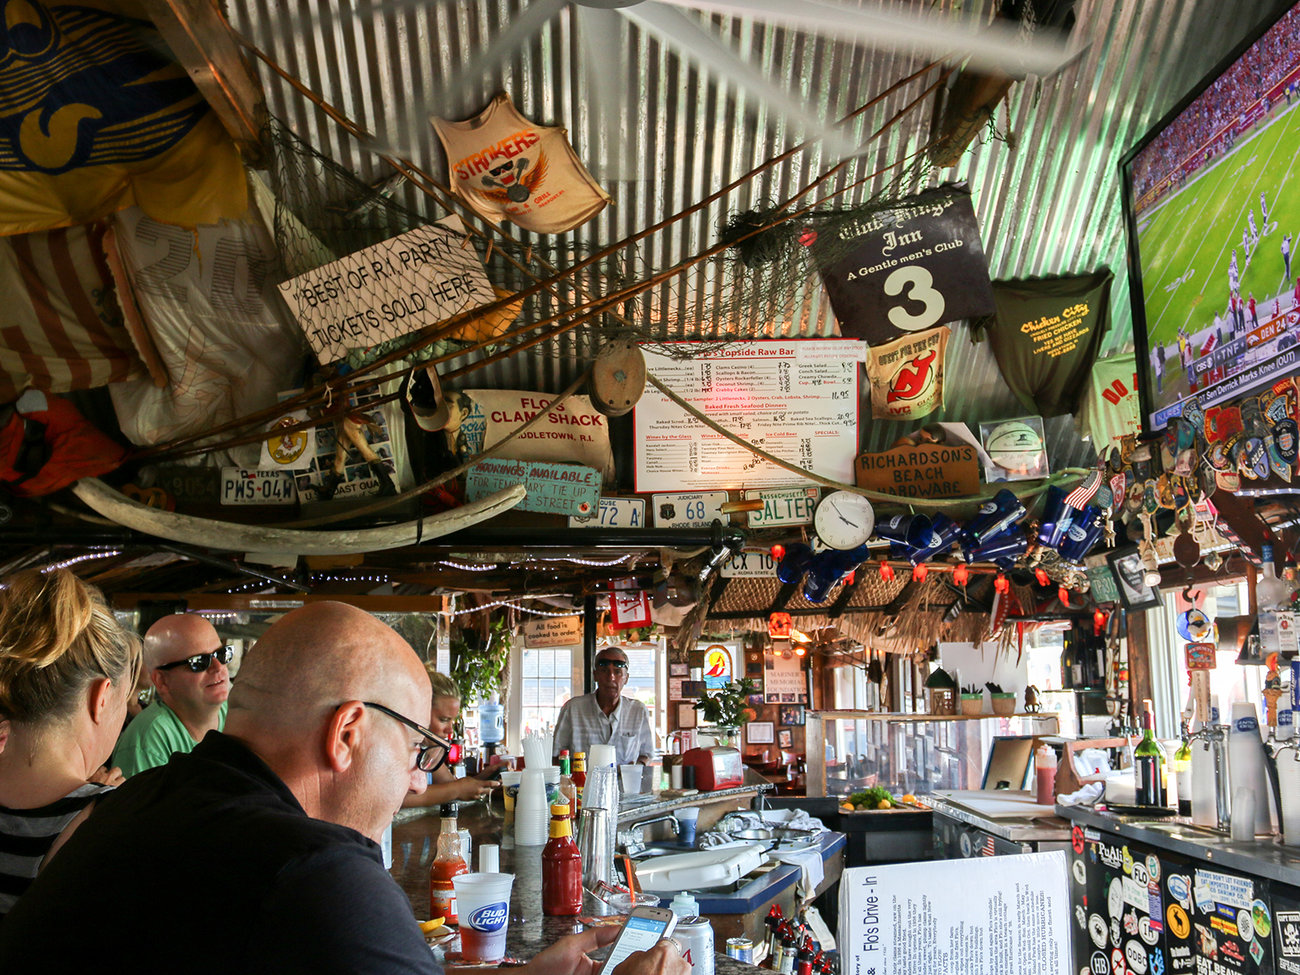 Flo's Clam Shack Restaurant in Rhode Island